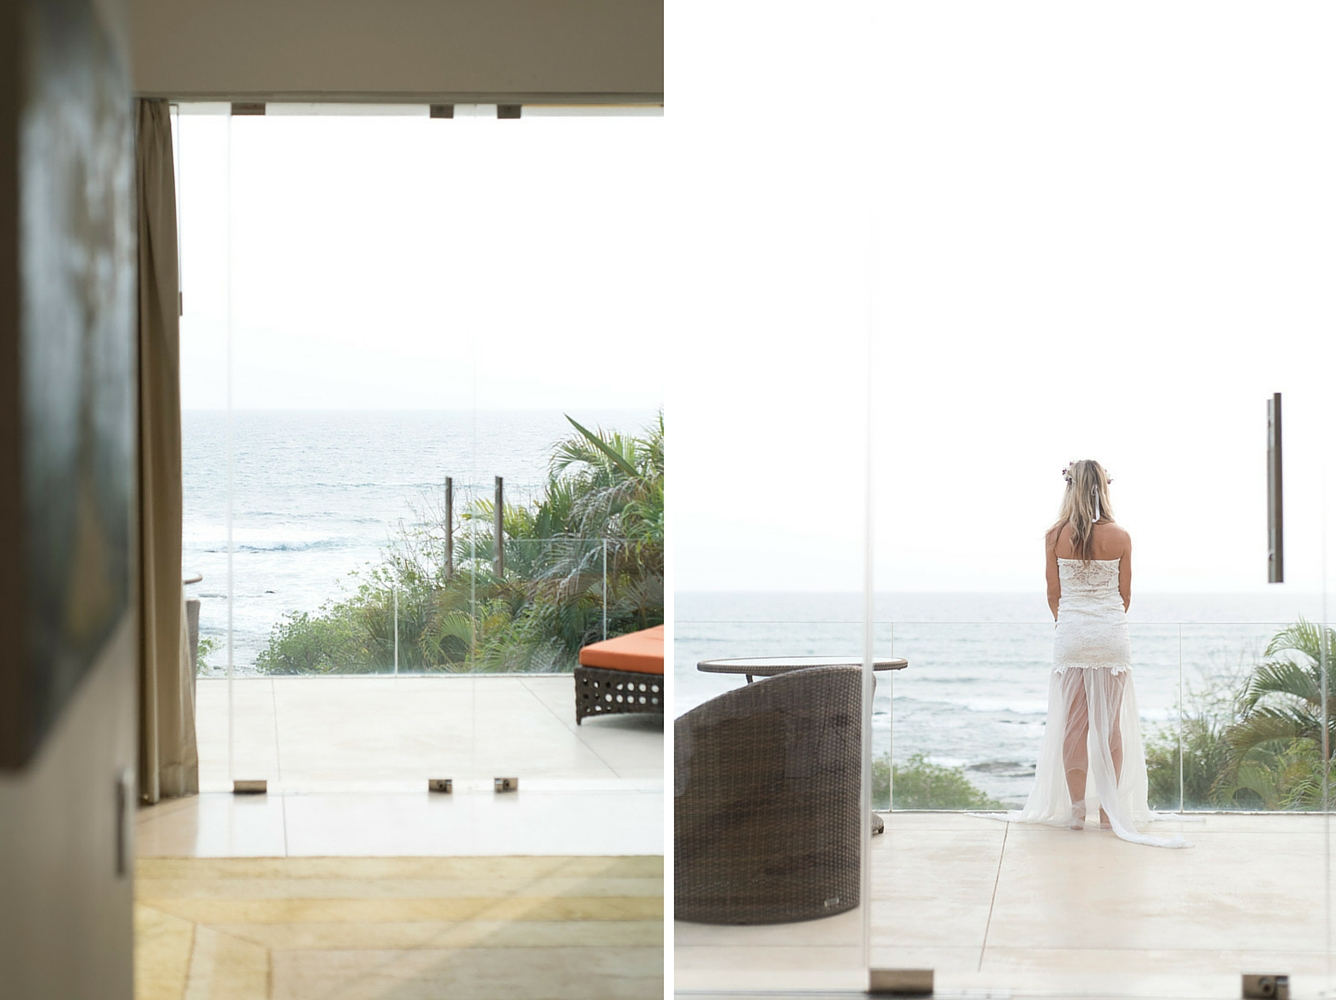 Bride looking out into the Pacific Ocean before wedding on Playa Langosta, Costa Rica. Photographed by Kristen M. Brown, Samba to the Sea Photography.